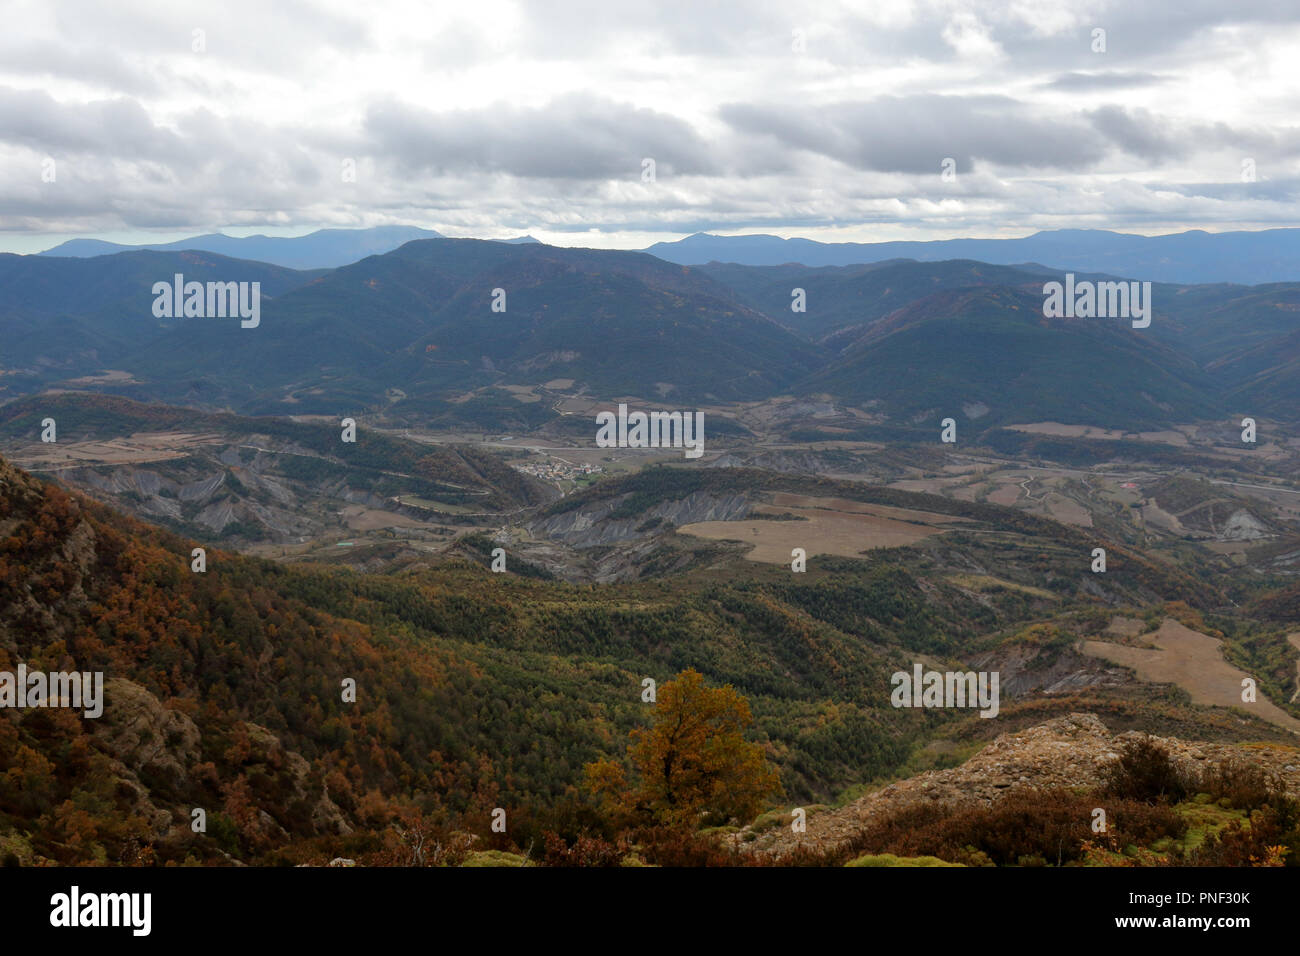 Blue cloudy sky and typical mountains and hills covered with forest met in autumn while hiking from Yebra de Basa town to Santa Orosia church, Spain Stock Photo